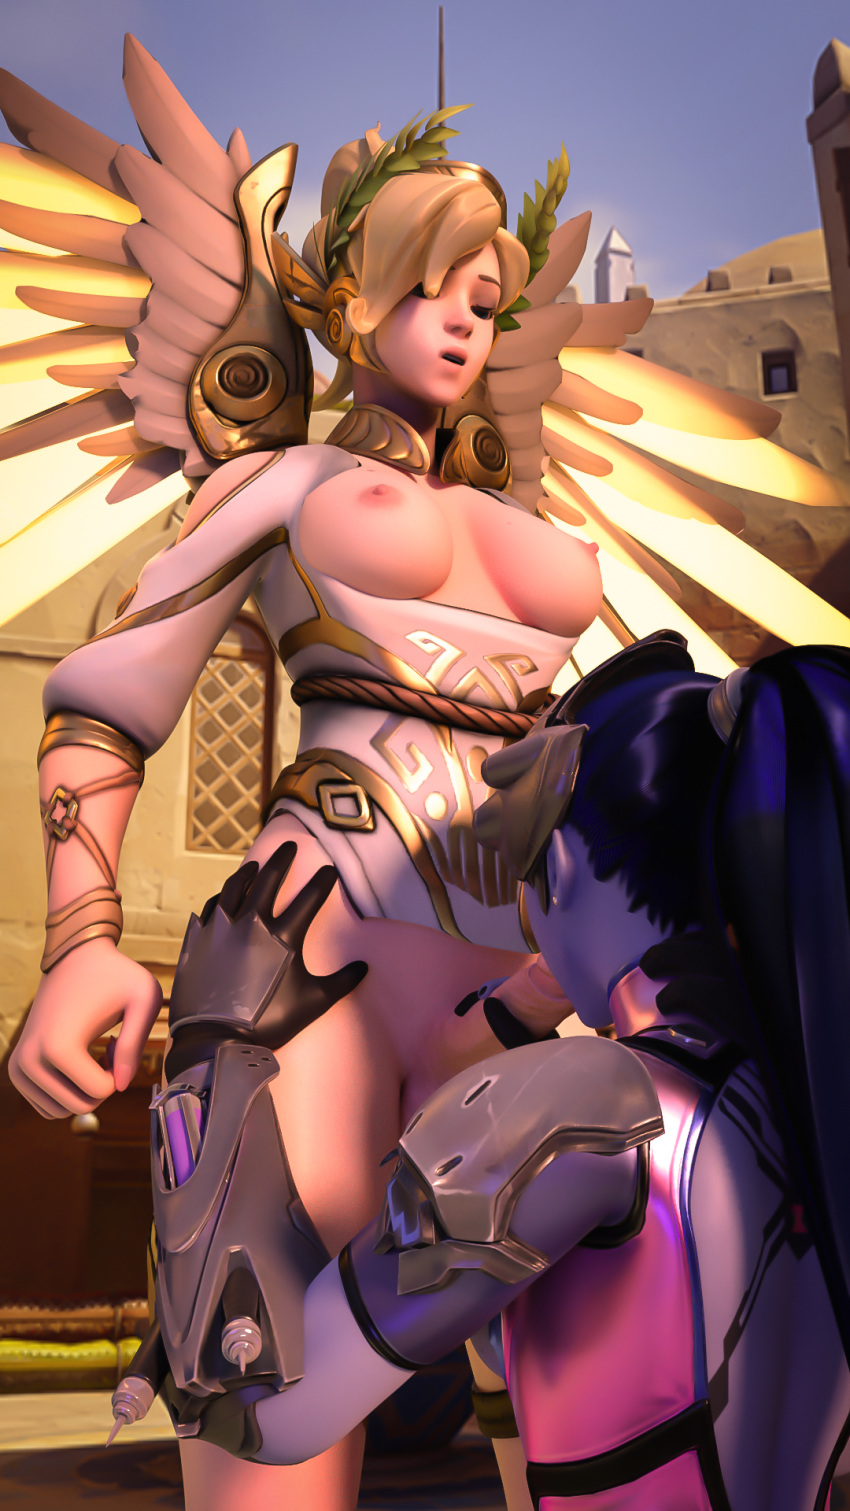 winged victory mercy Battle for dream island com